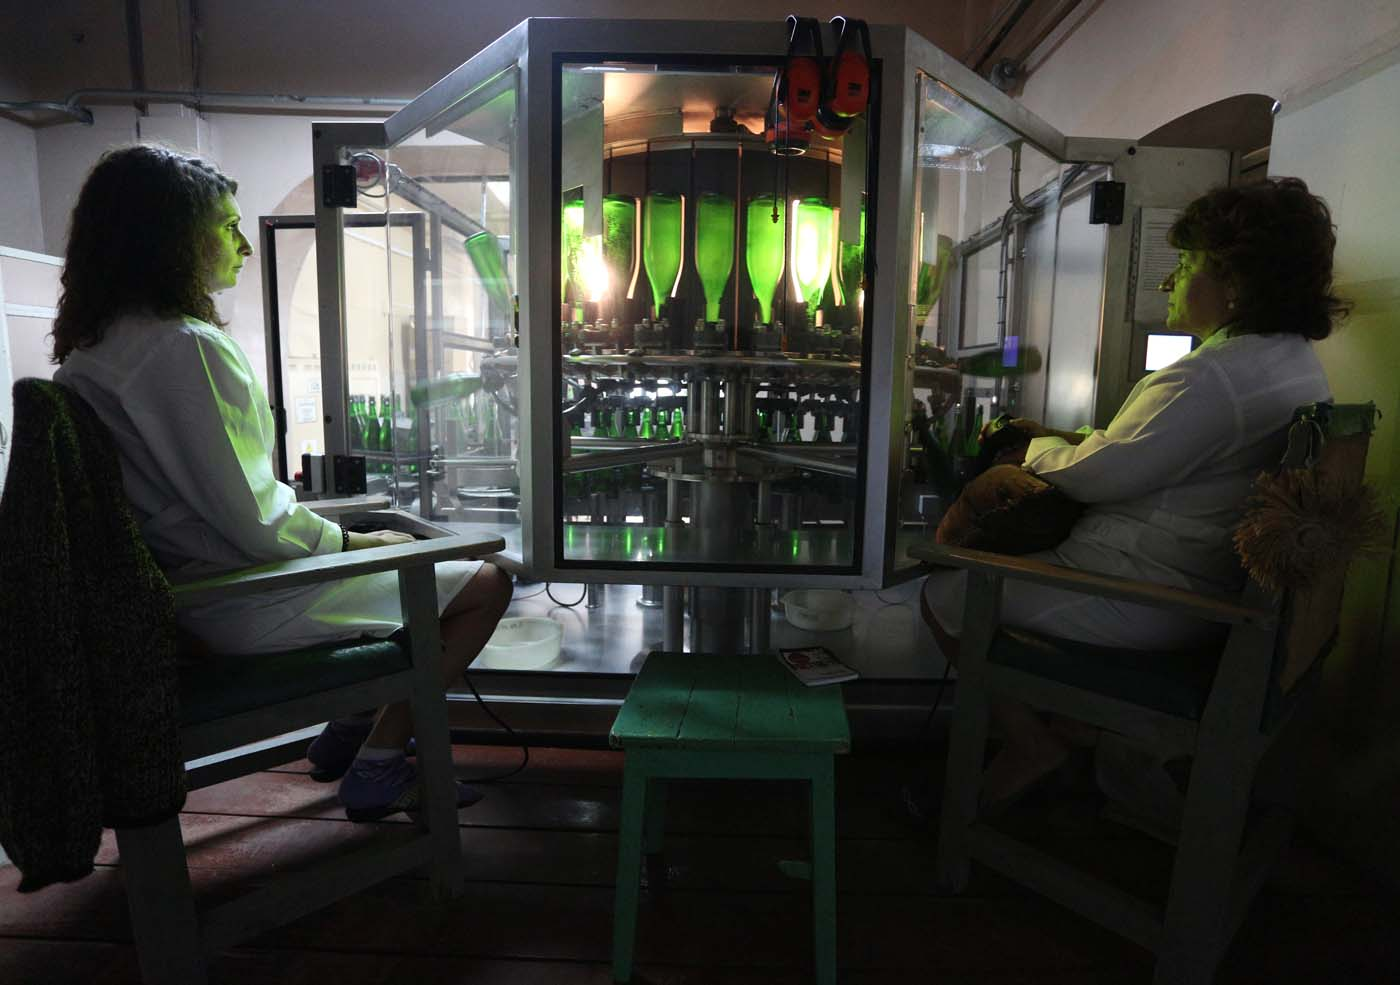 "Employees work on the production line in the ""Artwinery"" winery firm in the eastern Ukrainian city of Bakhmut on July 12, 2017. The winery is located in a government-held town just two dozen kilometres (15 miles) from the frontline in Ukraine's low-level war, where the army and Russian-backed rebels continue to lob deadly artillery barrages at each other. The town spent around a month under rebel control in 2014, and in 2015 the frontline was so close that the town came under rebel shelling. But despite more than three years of fighting that has claimed some 10,000 lives, Nasyrov's employer, Artwinery, has never stopped production. / AFP PHOTO / Aleksey FILIPPOV"